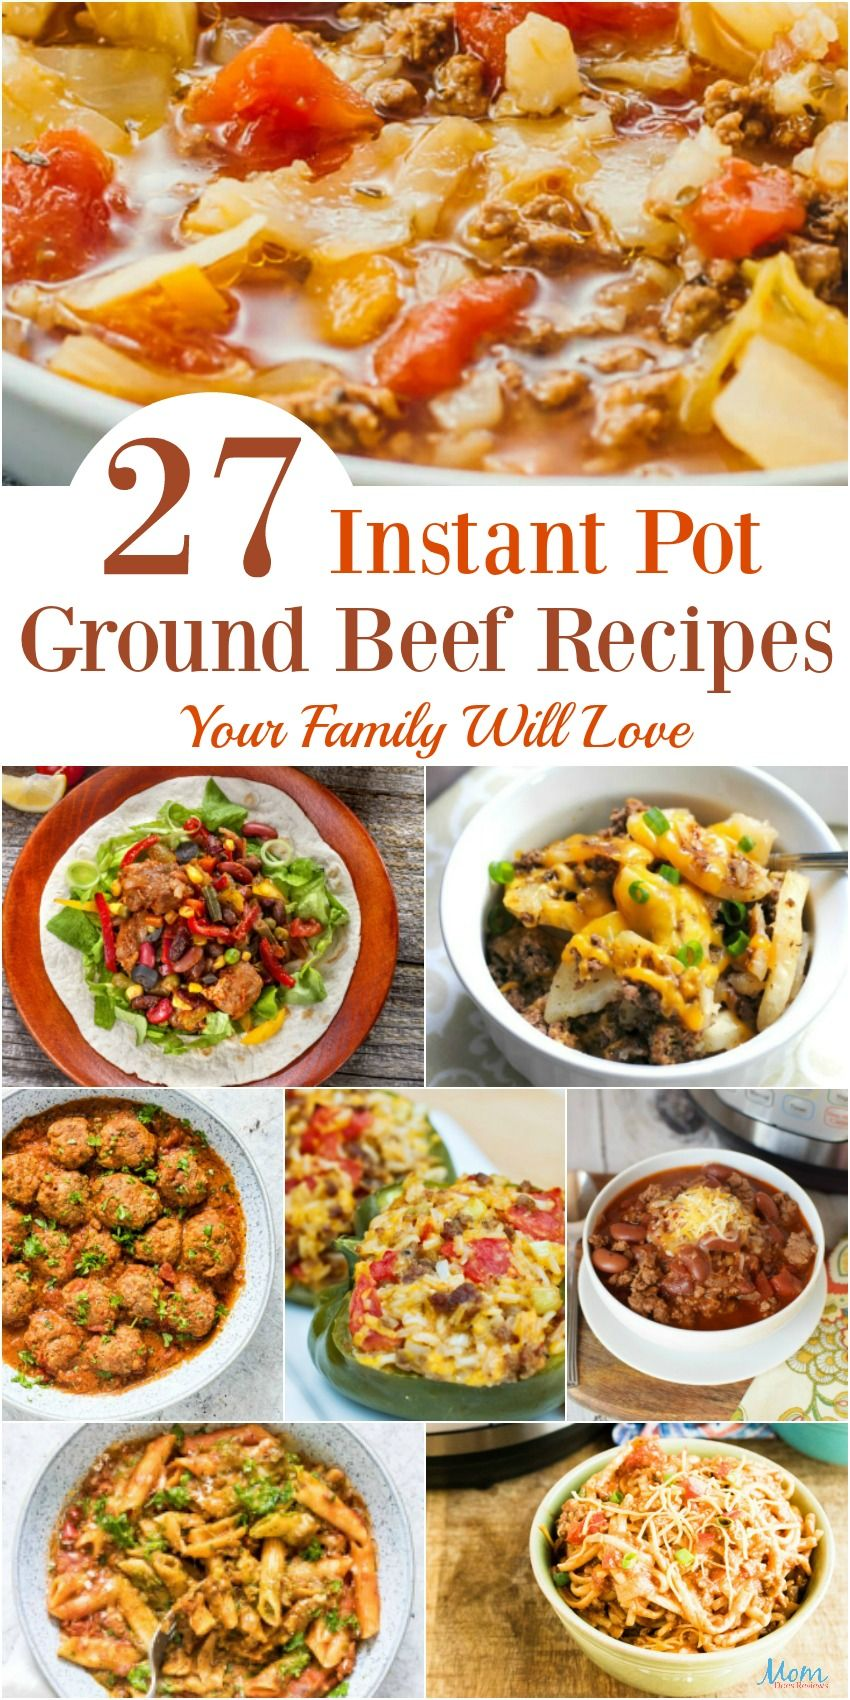 27 Instant Pot Ground Beef Recipes Your Family Will Love Beef Recipes Easy Instant Pot Dinner Recipes Ground Beef Recipes